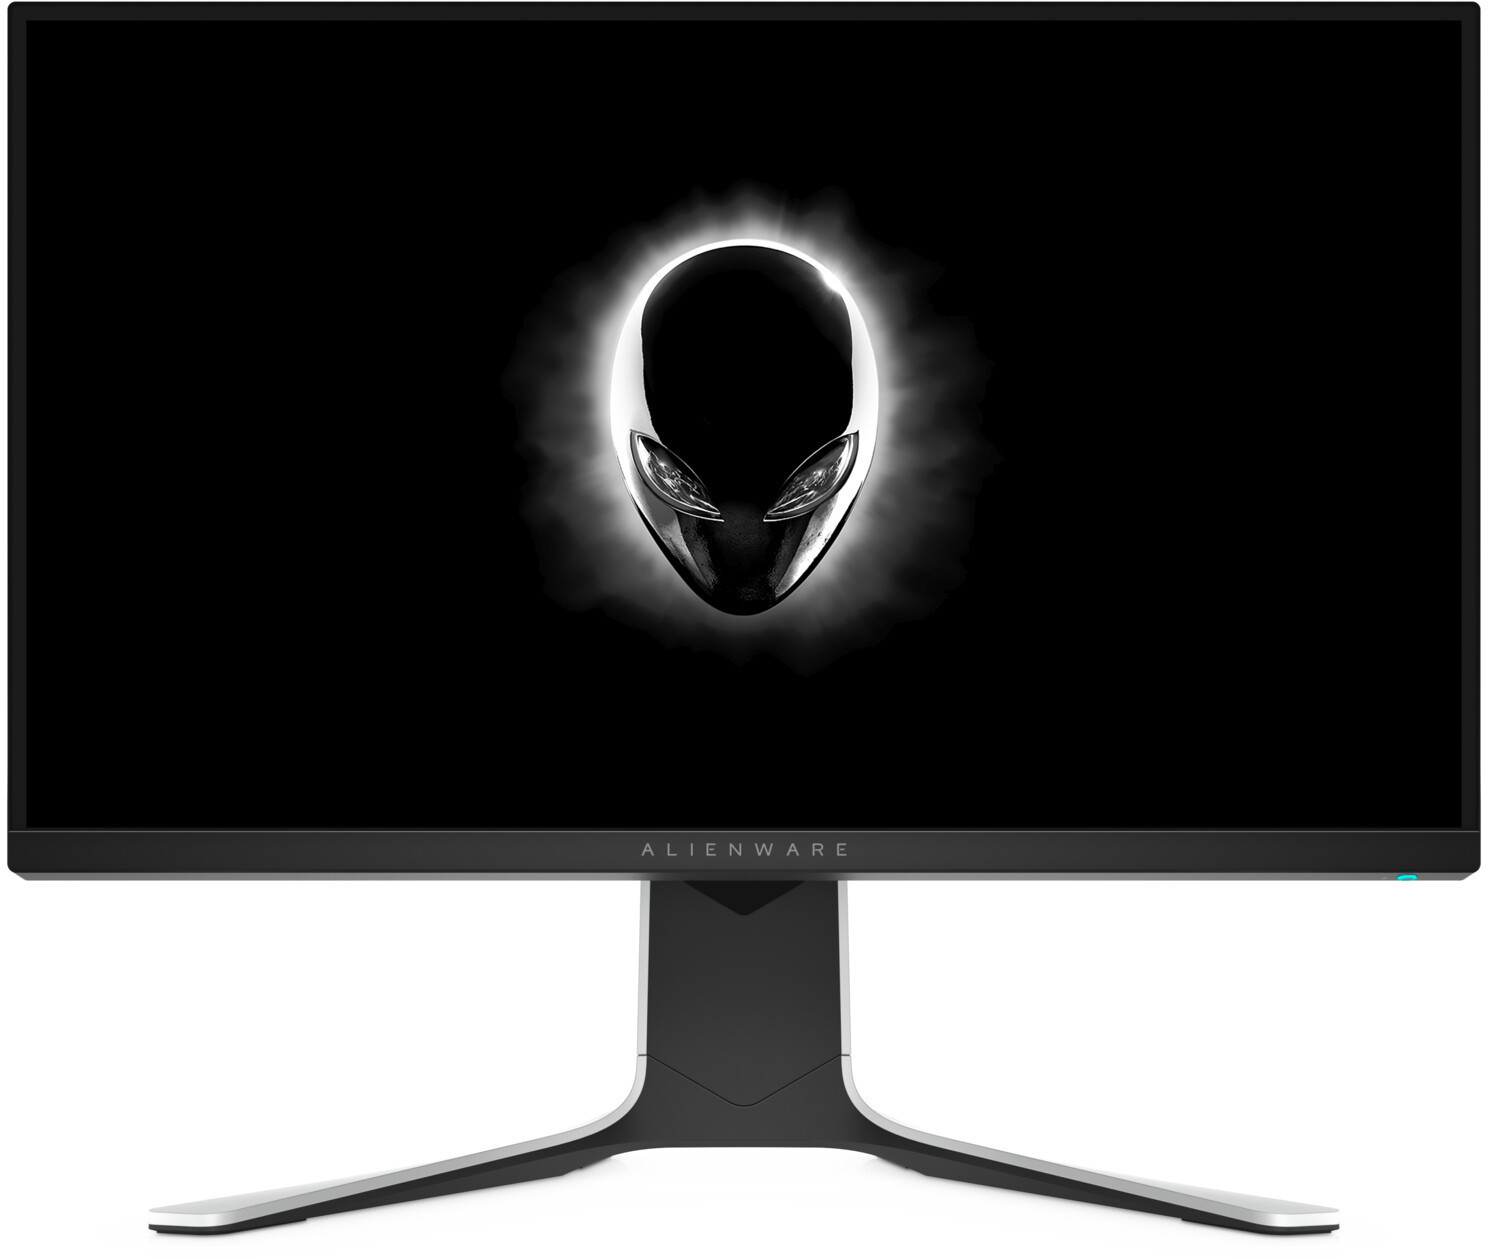 Image of Alienware AW2720HF